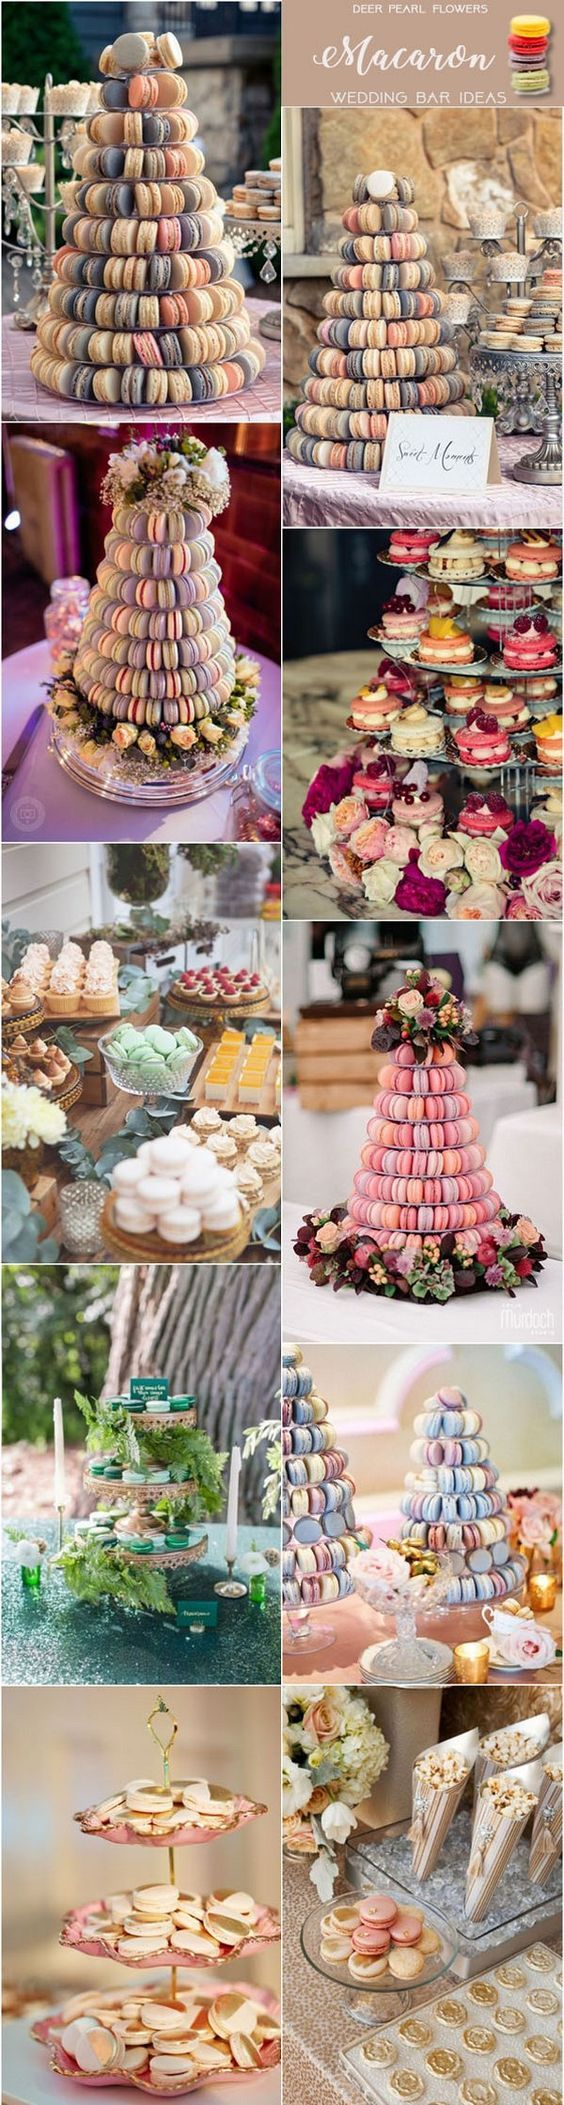 The 25 best wedding catering ideas on pinterest wedding for Food bar trend skopje